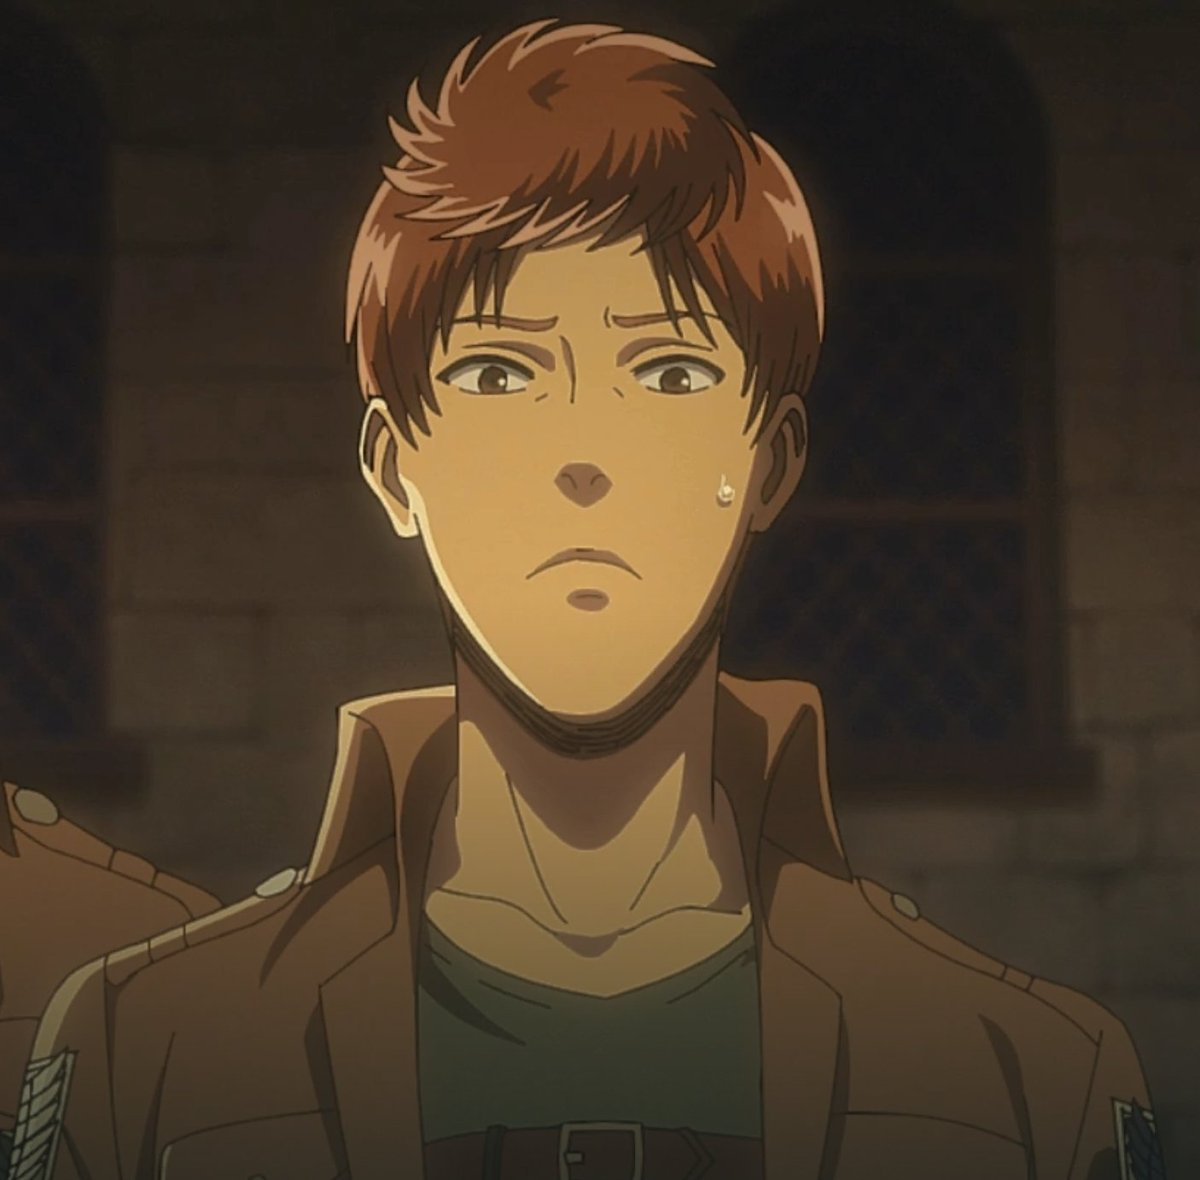 They look so different, you wouldn't know they were the same character If you weren't told. #flochforster #AttackOnTitan #AttackonTitanFinalSeason #mappa